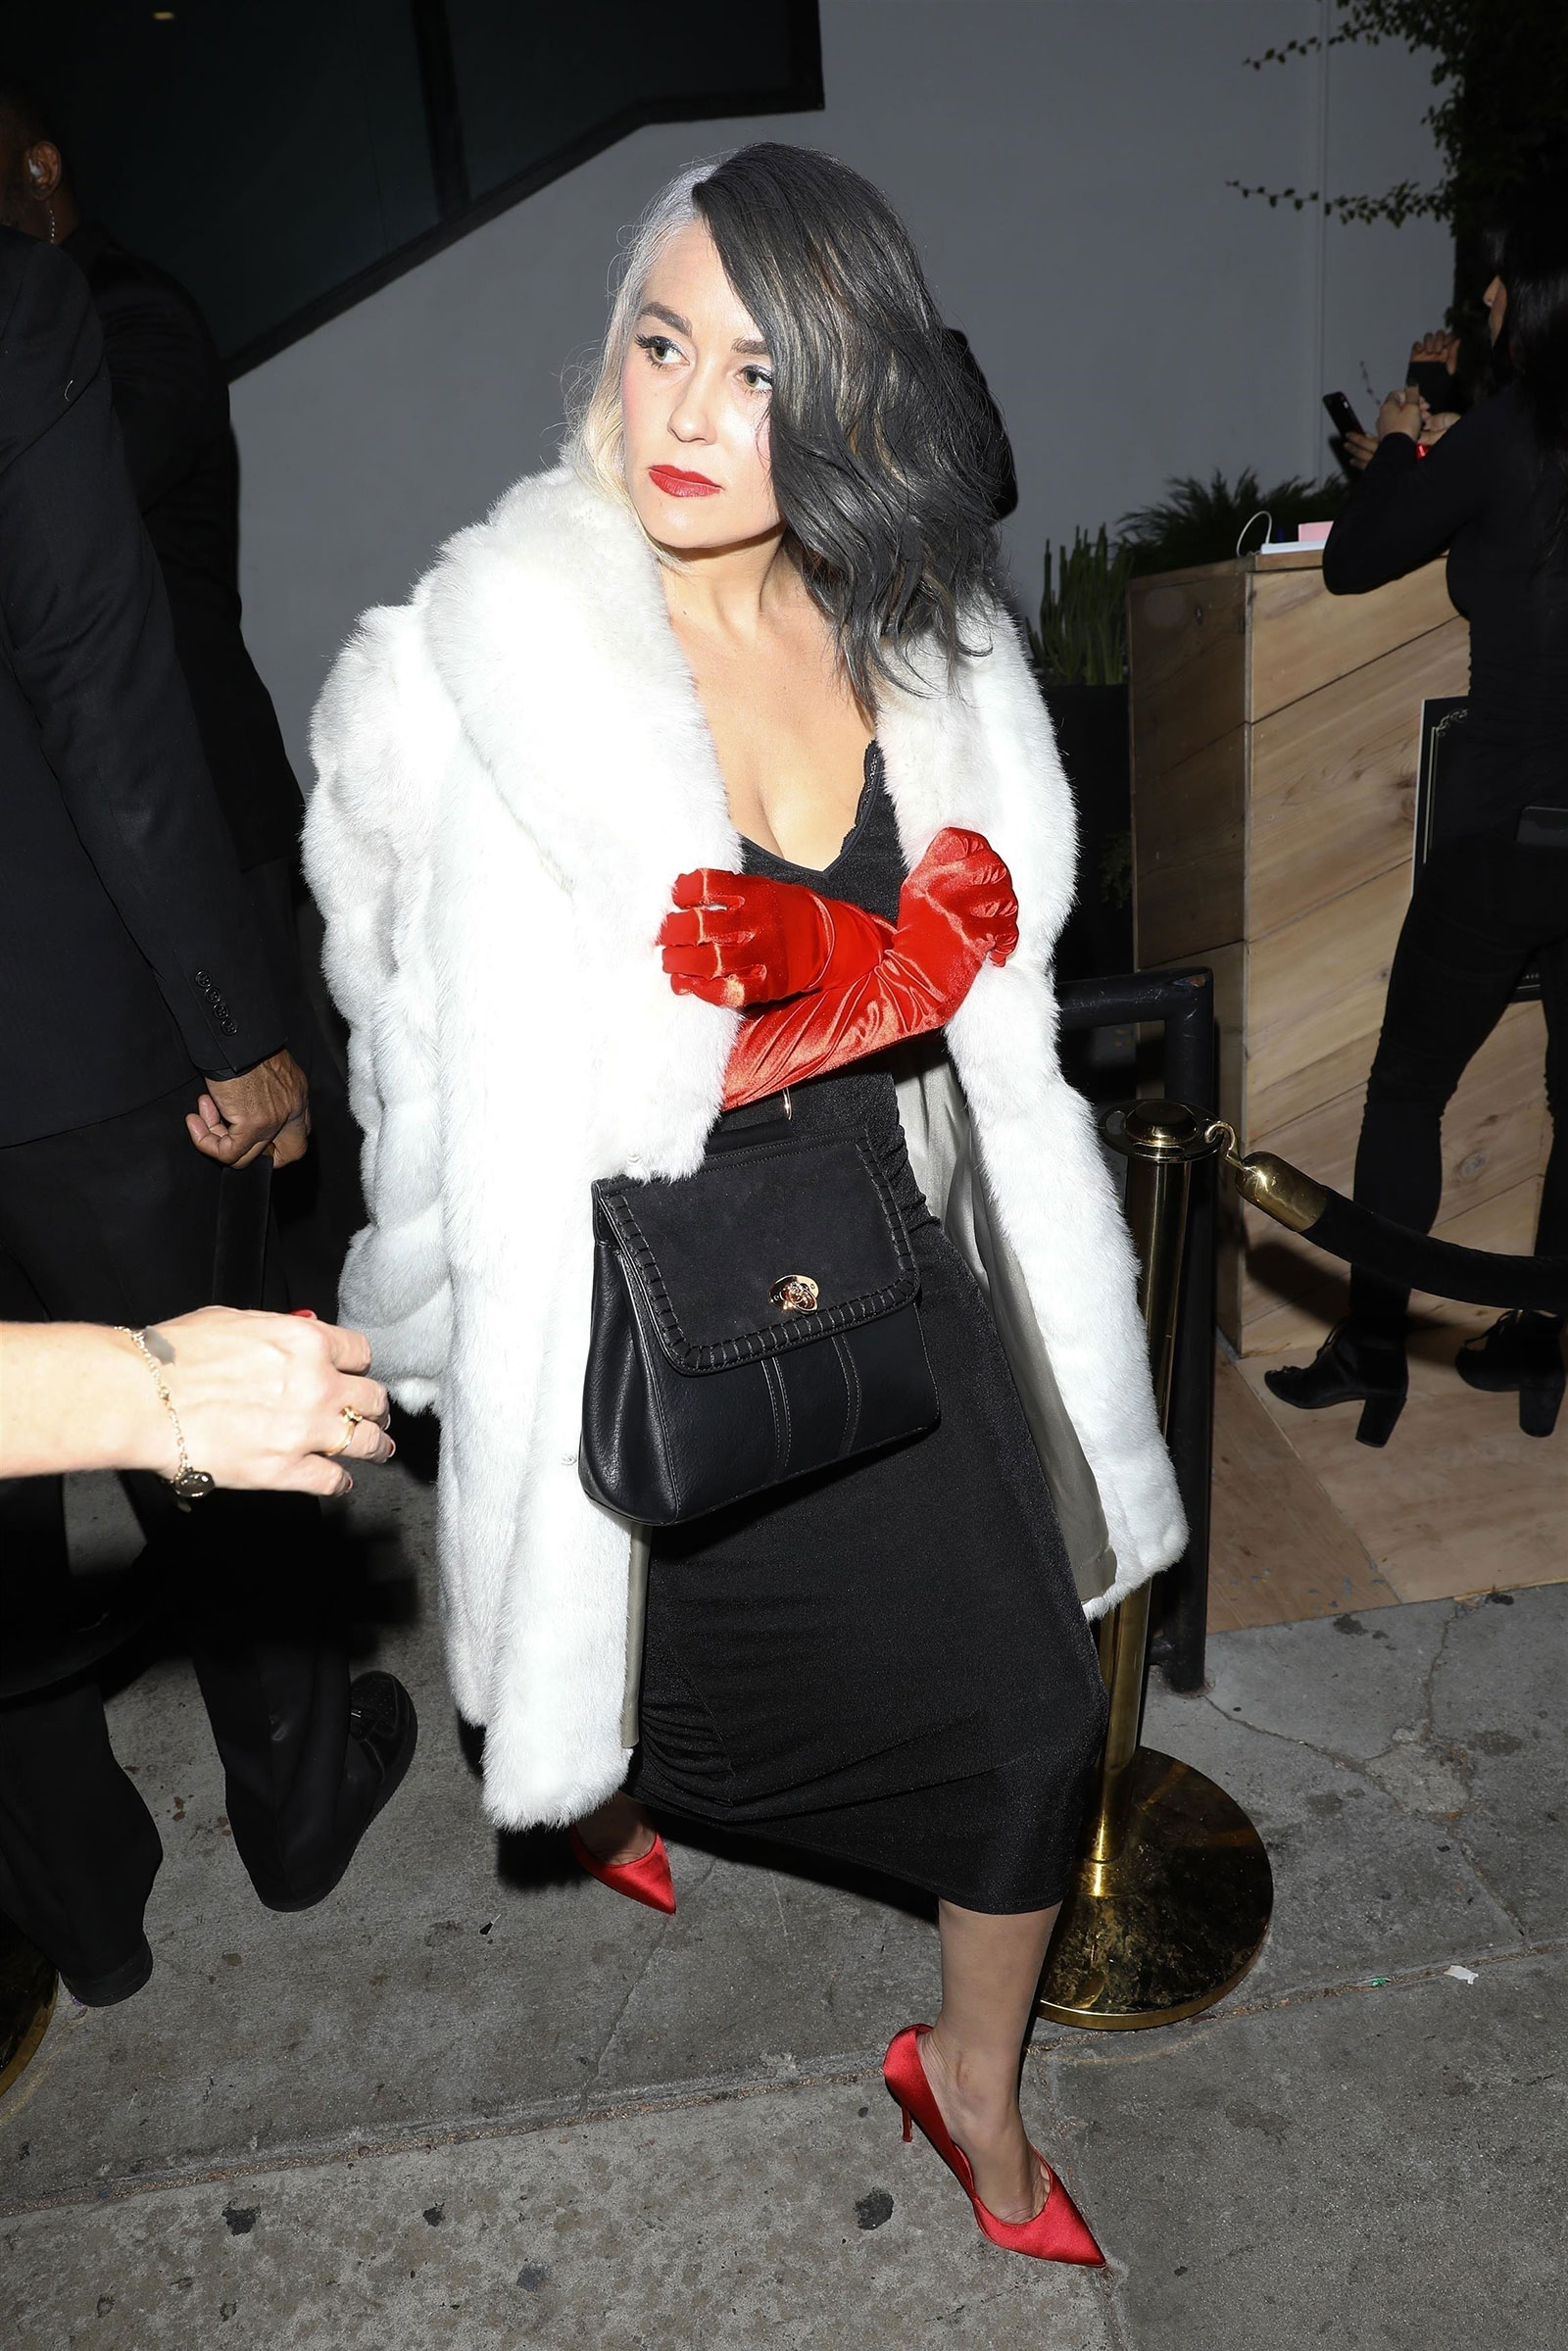 Lauren Conrad as Cruella de Vil Halloween Costume celebrity inspiration easy DIY last-minute